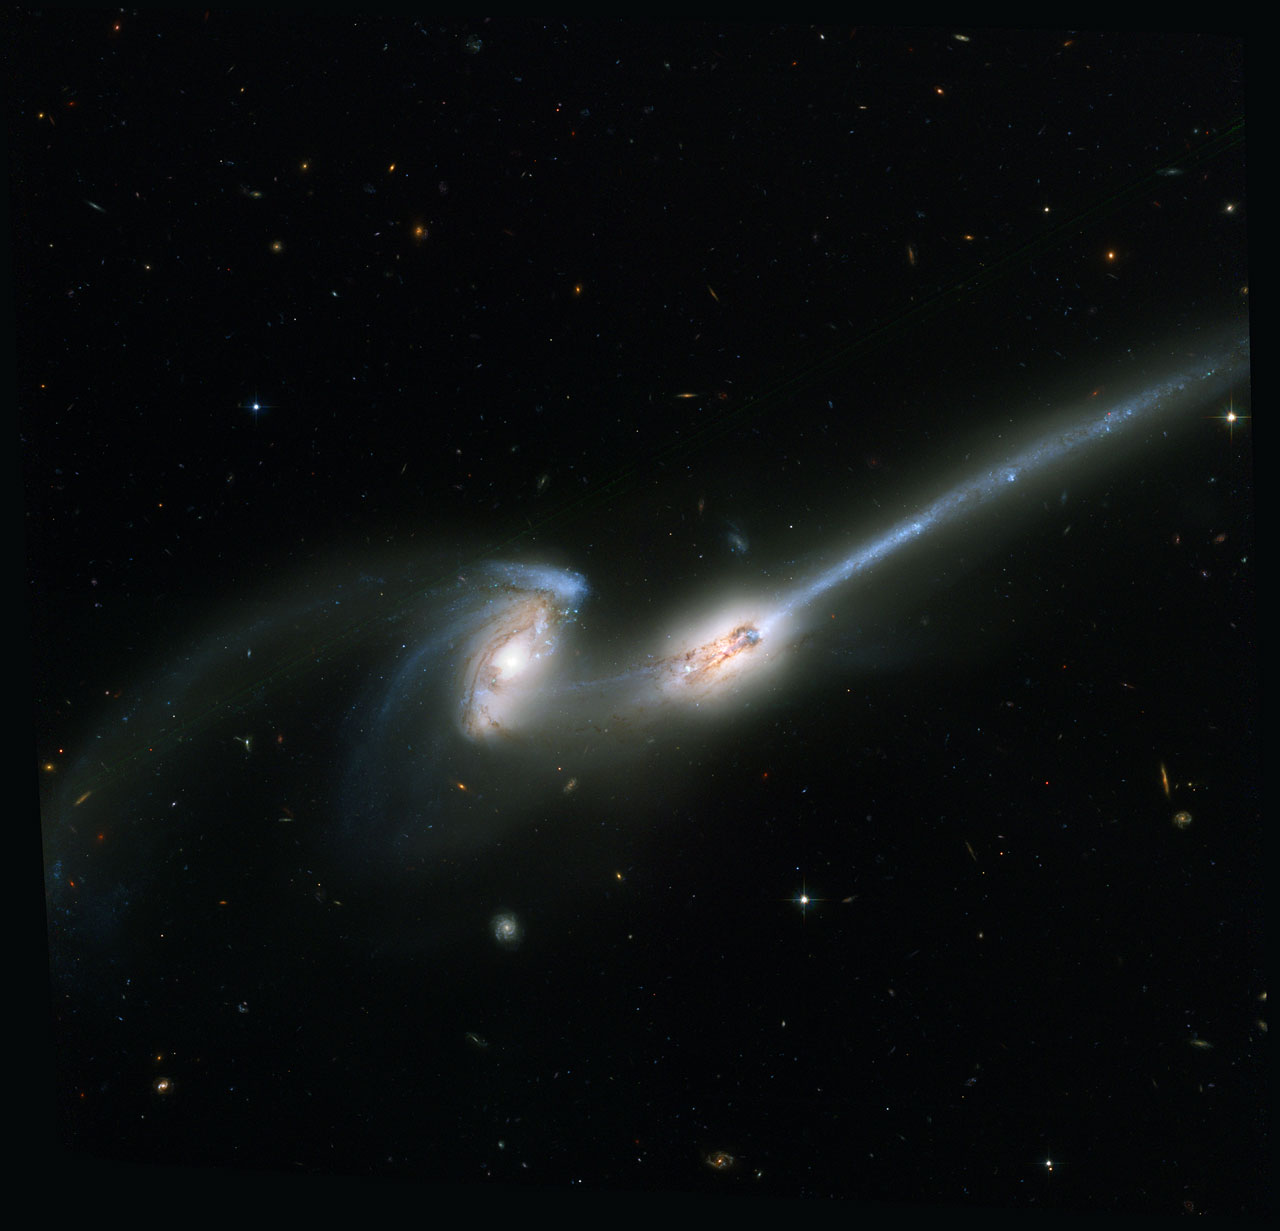 The Mice - colliding galaxies